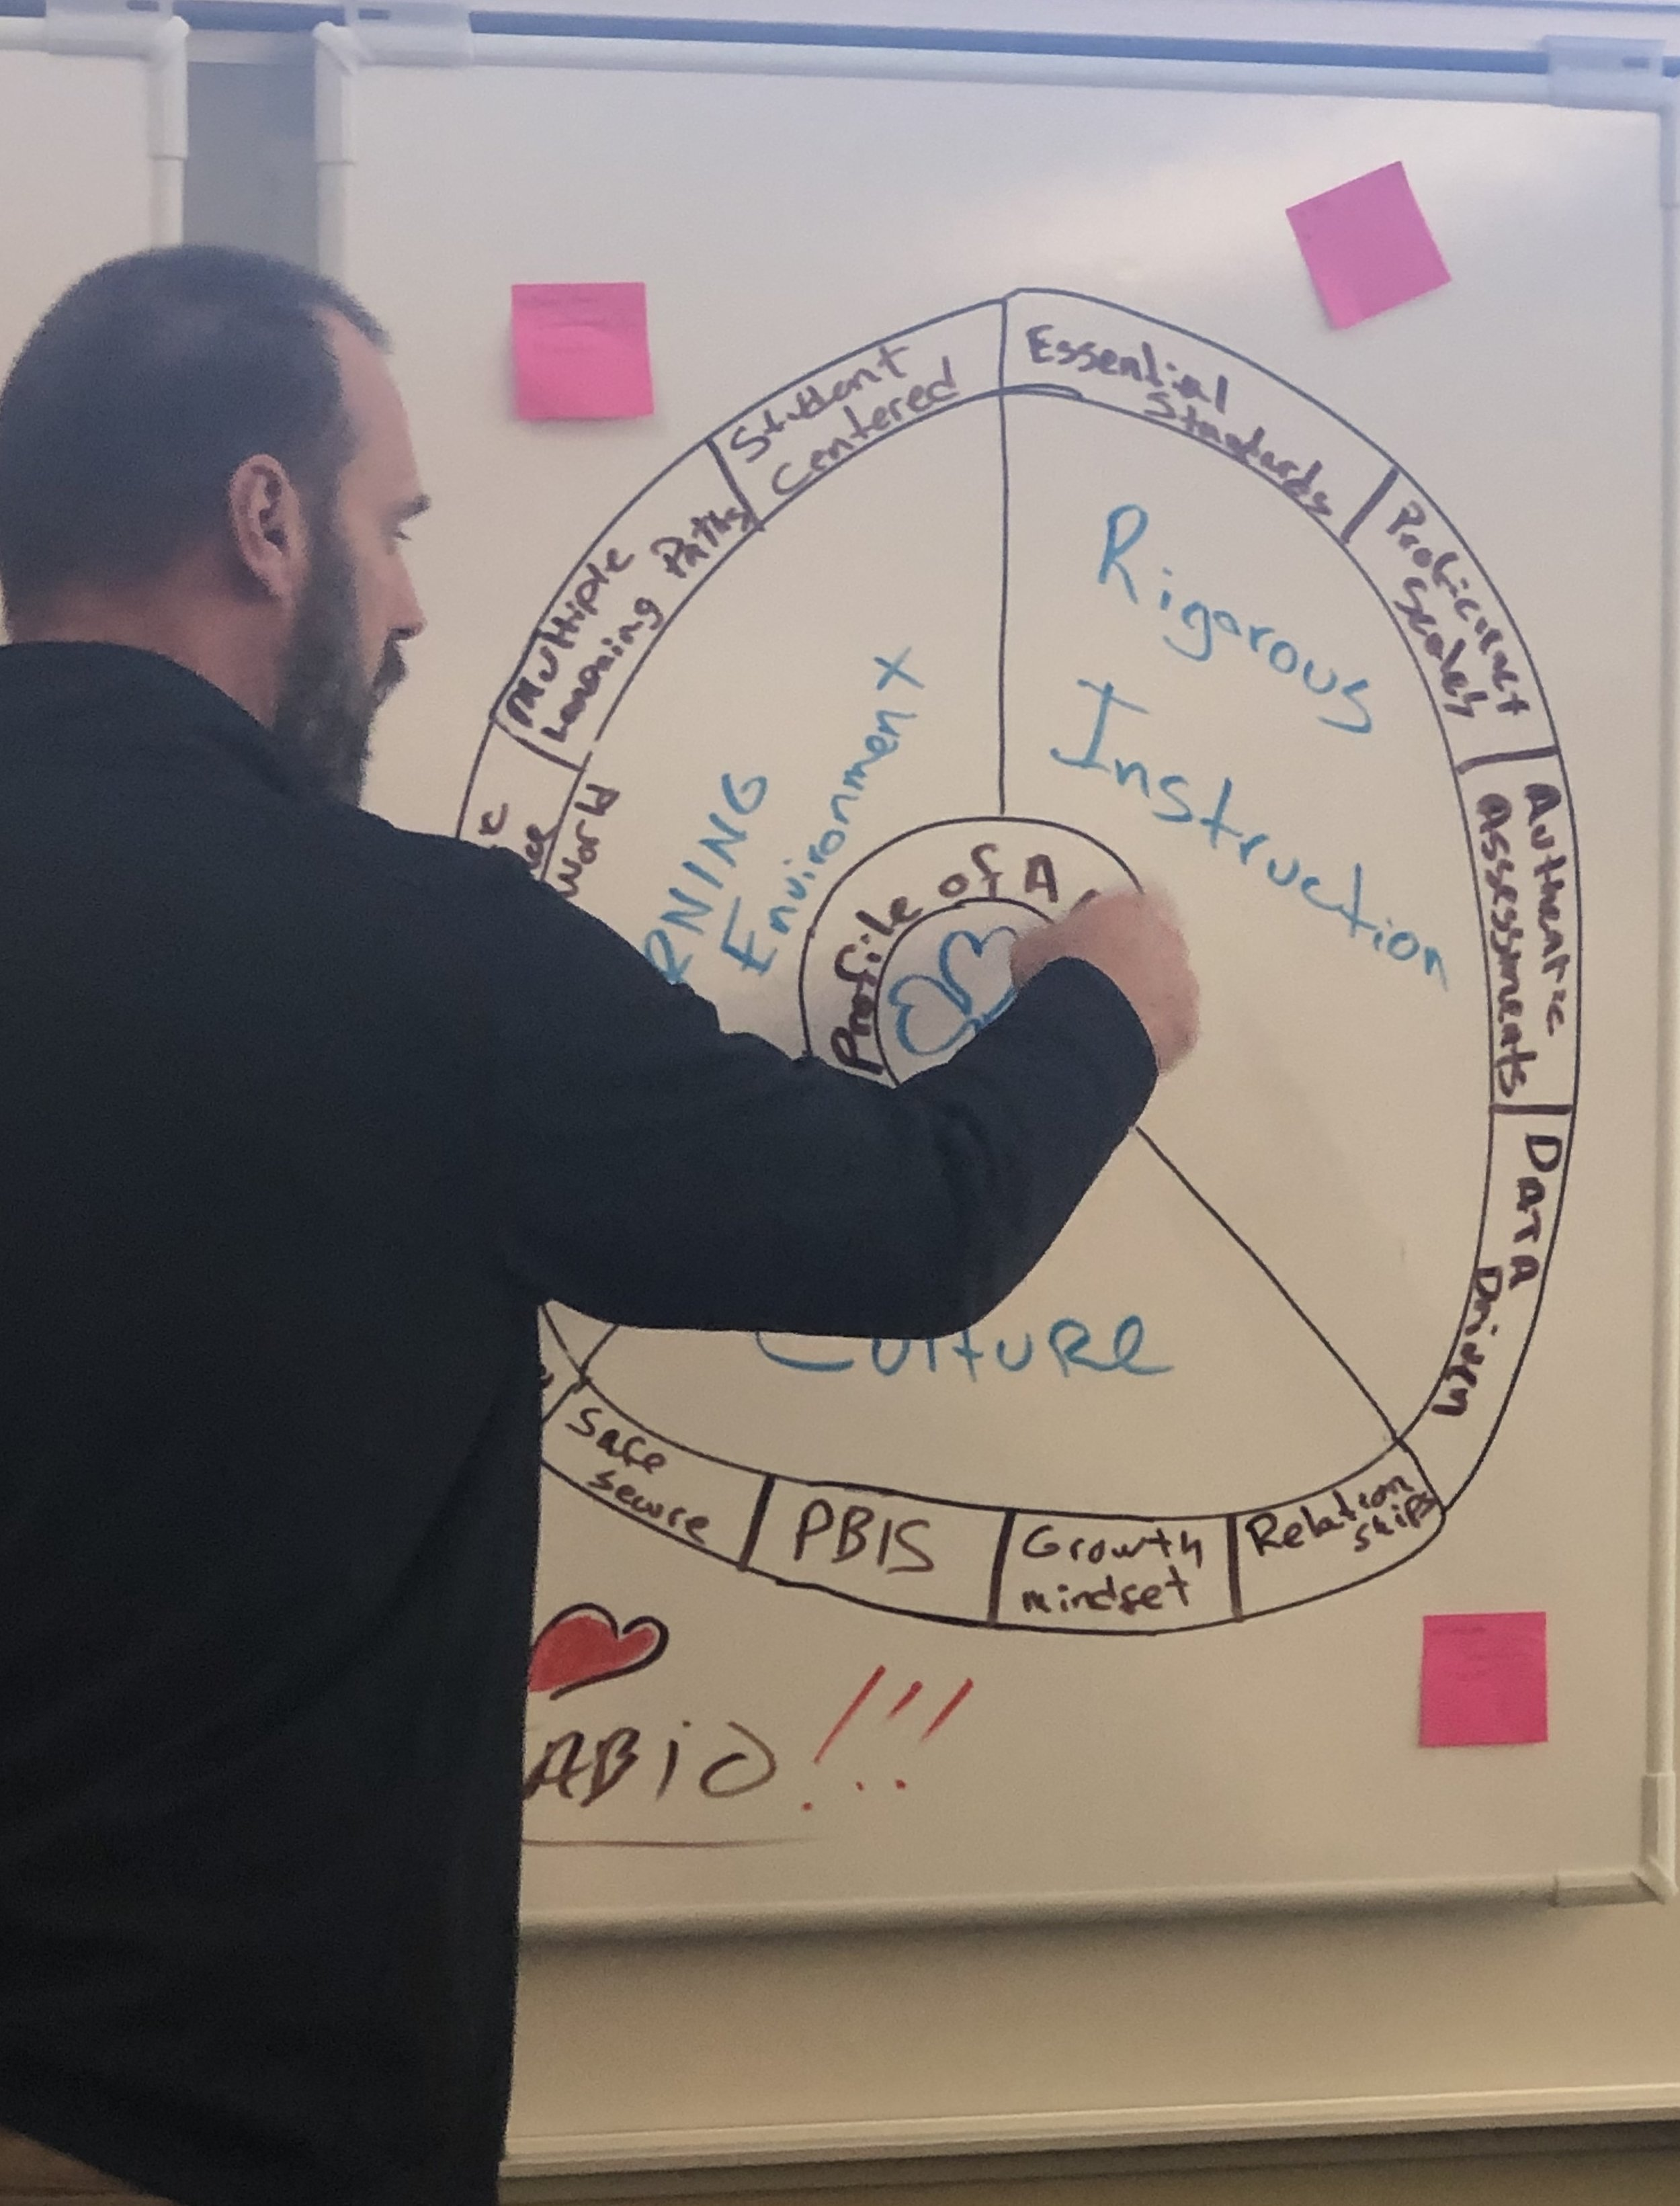 Steve Spenner, Berrien Springs Middle School Principal, explains the major components and big ideas of his group's instructional model draft.